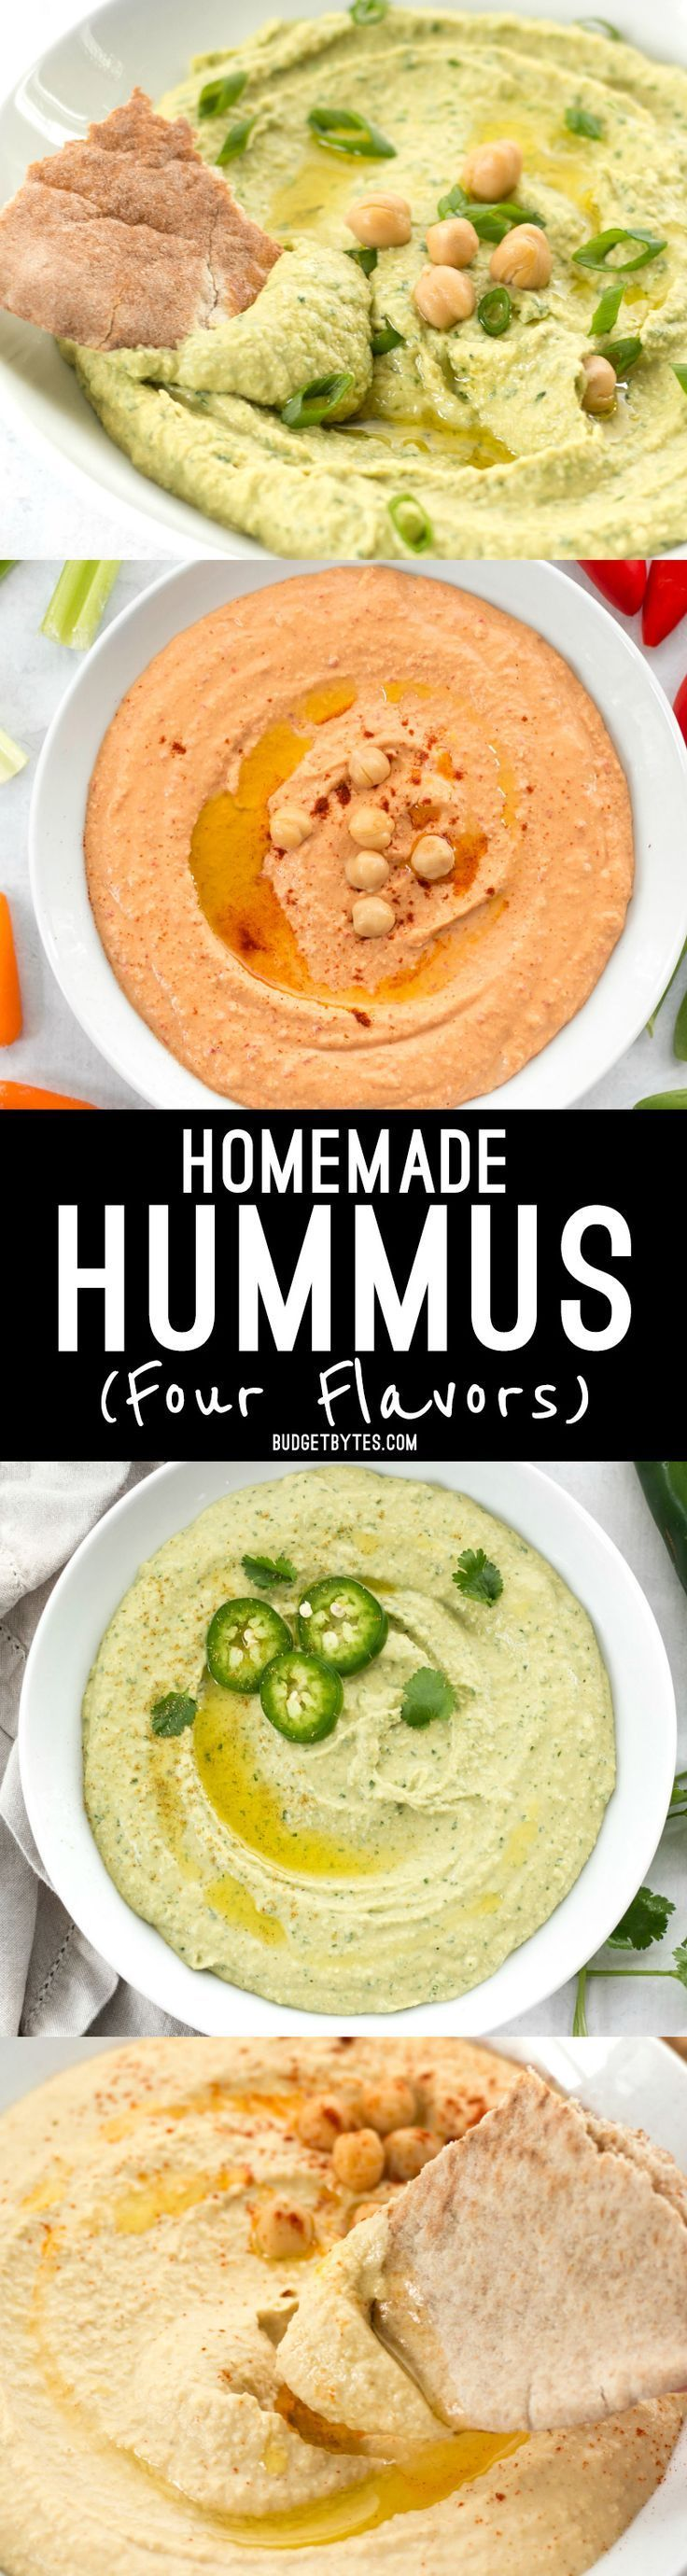 Homemade hummus is quick, easy, and inexpensive, and can be made with several different flavor add-ins. Here are four delicious flavors to try.